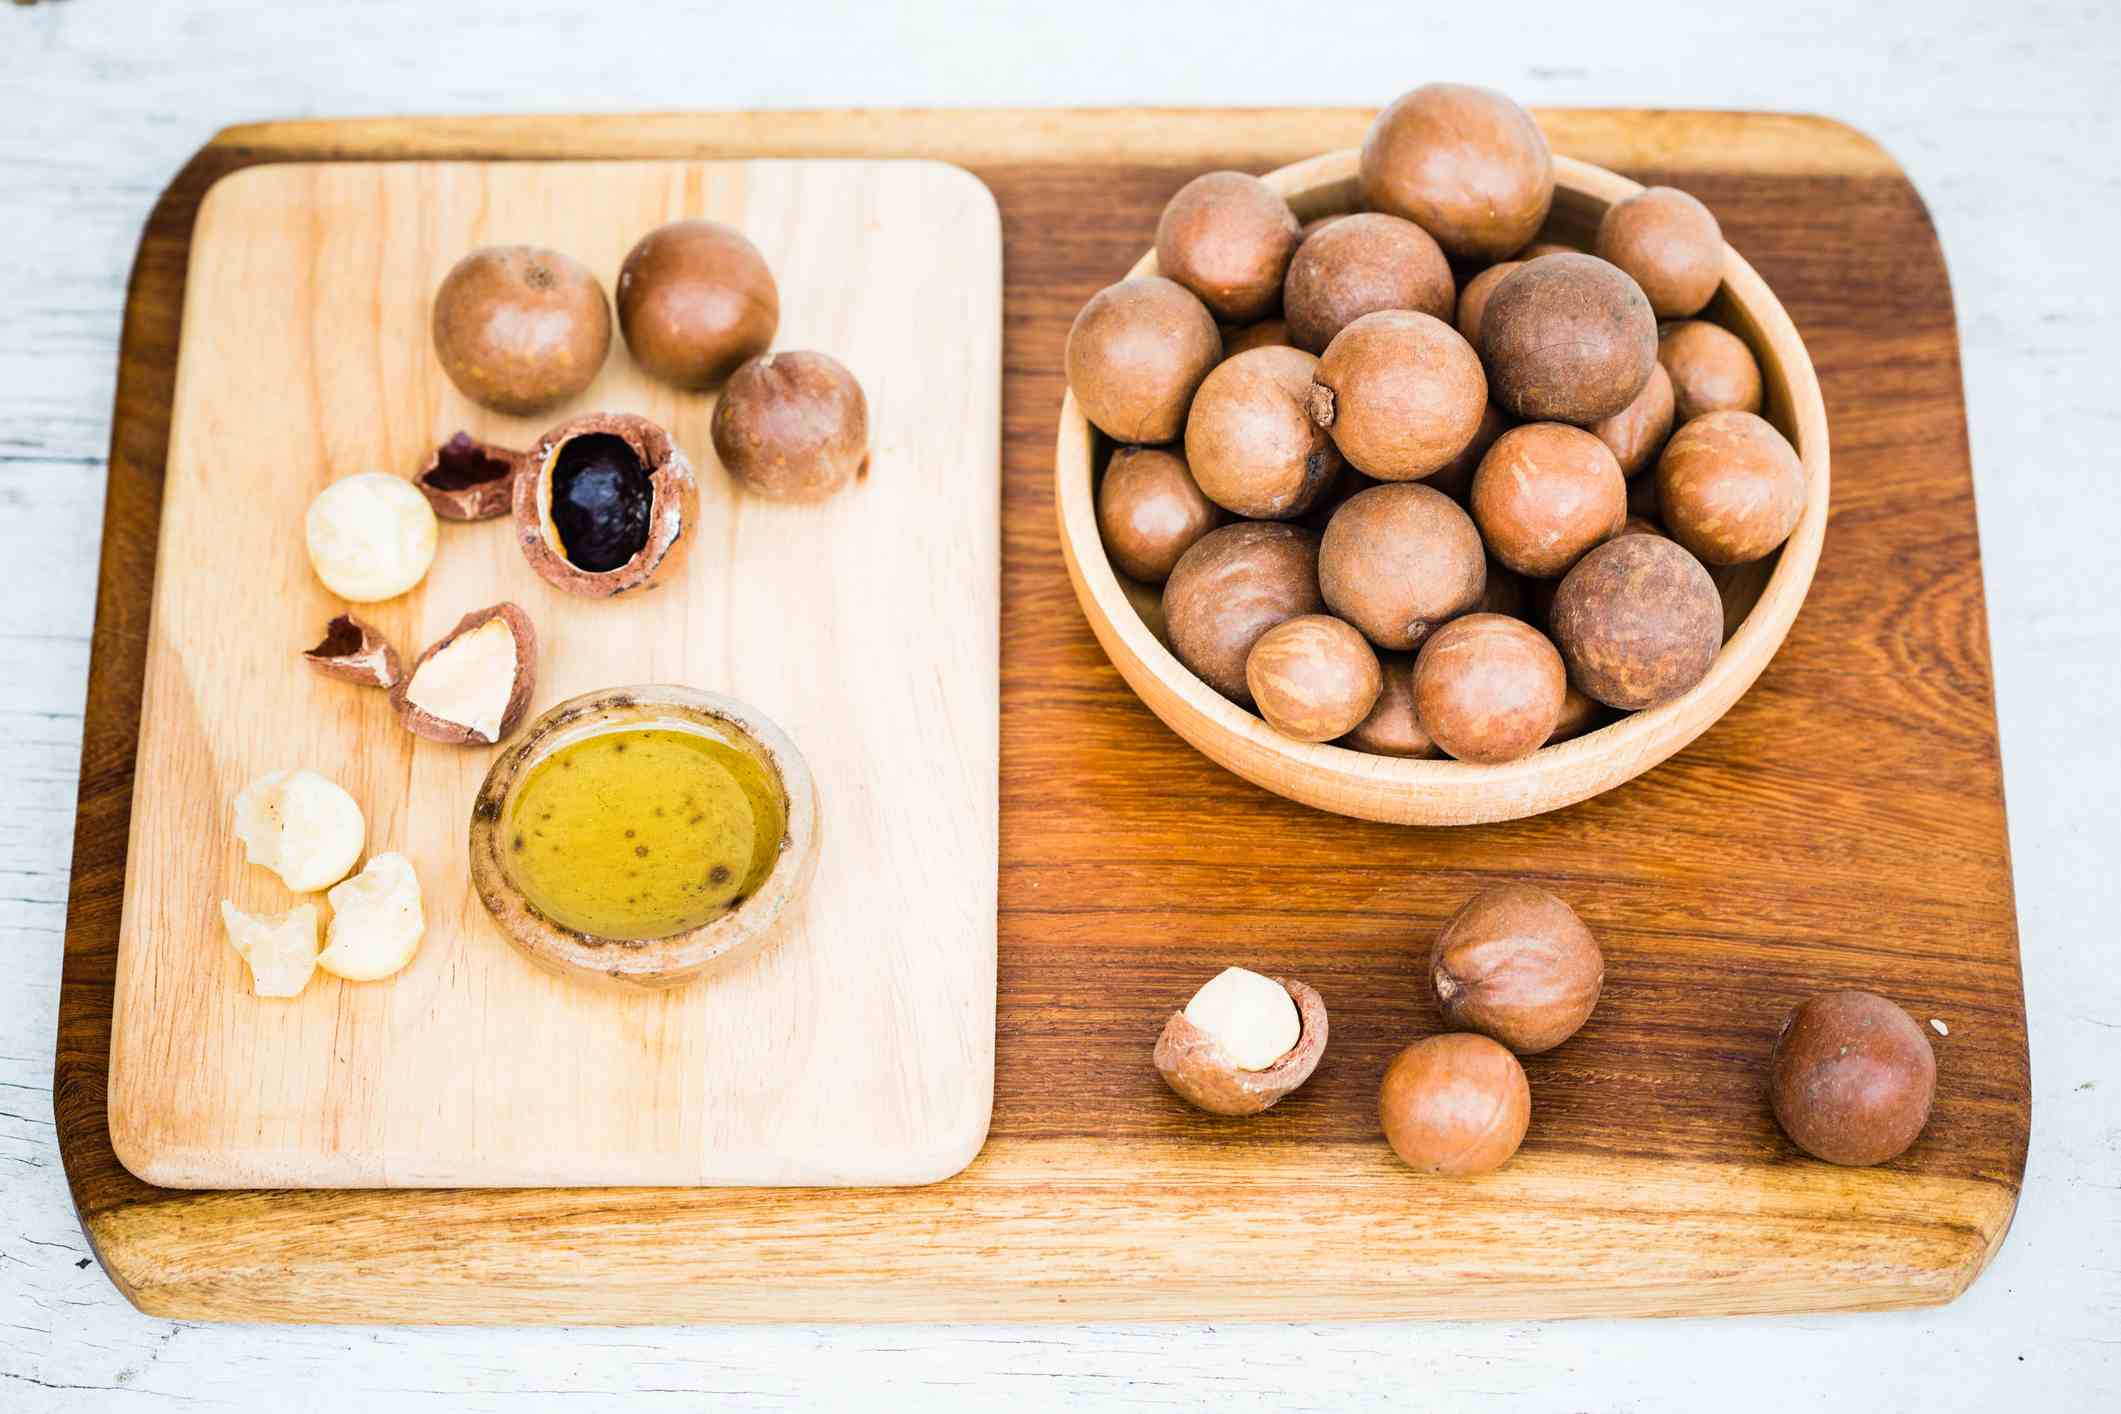 Macadamia nuts and oil on cutting board